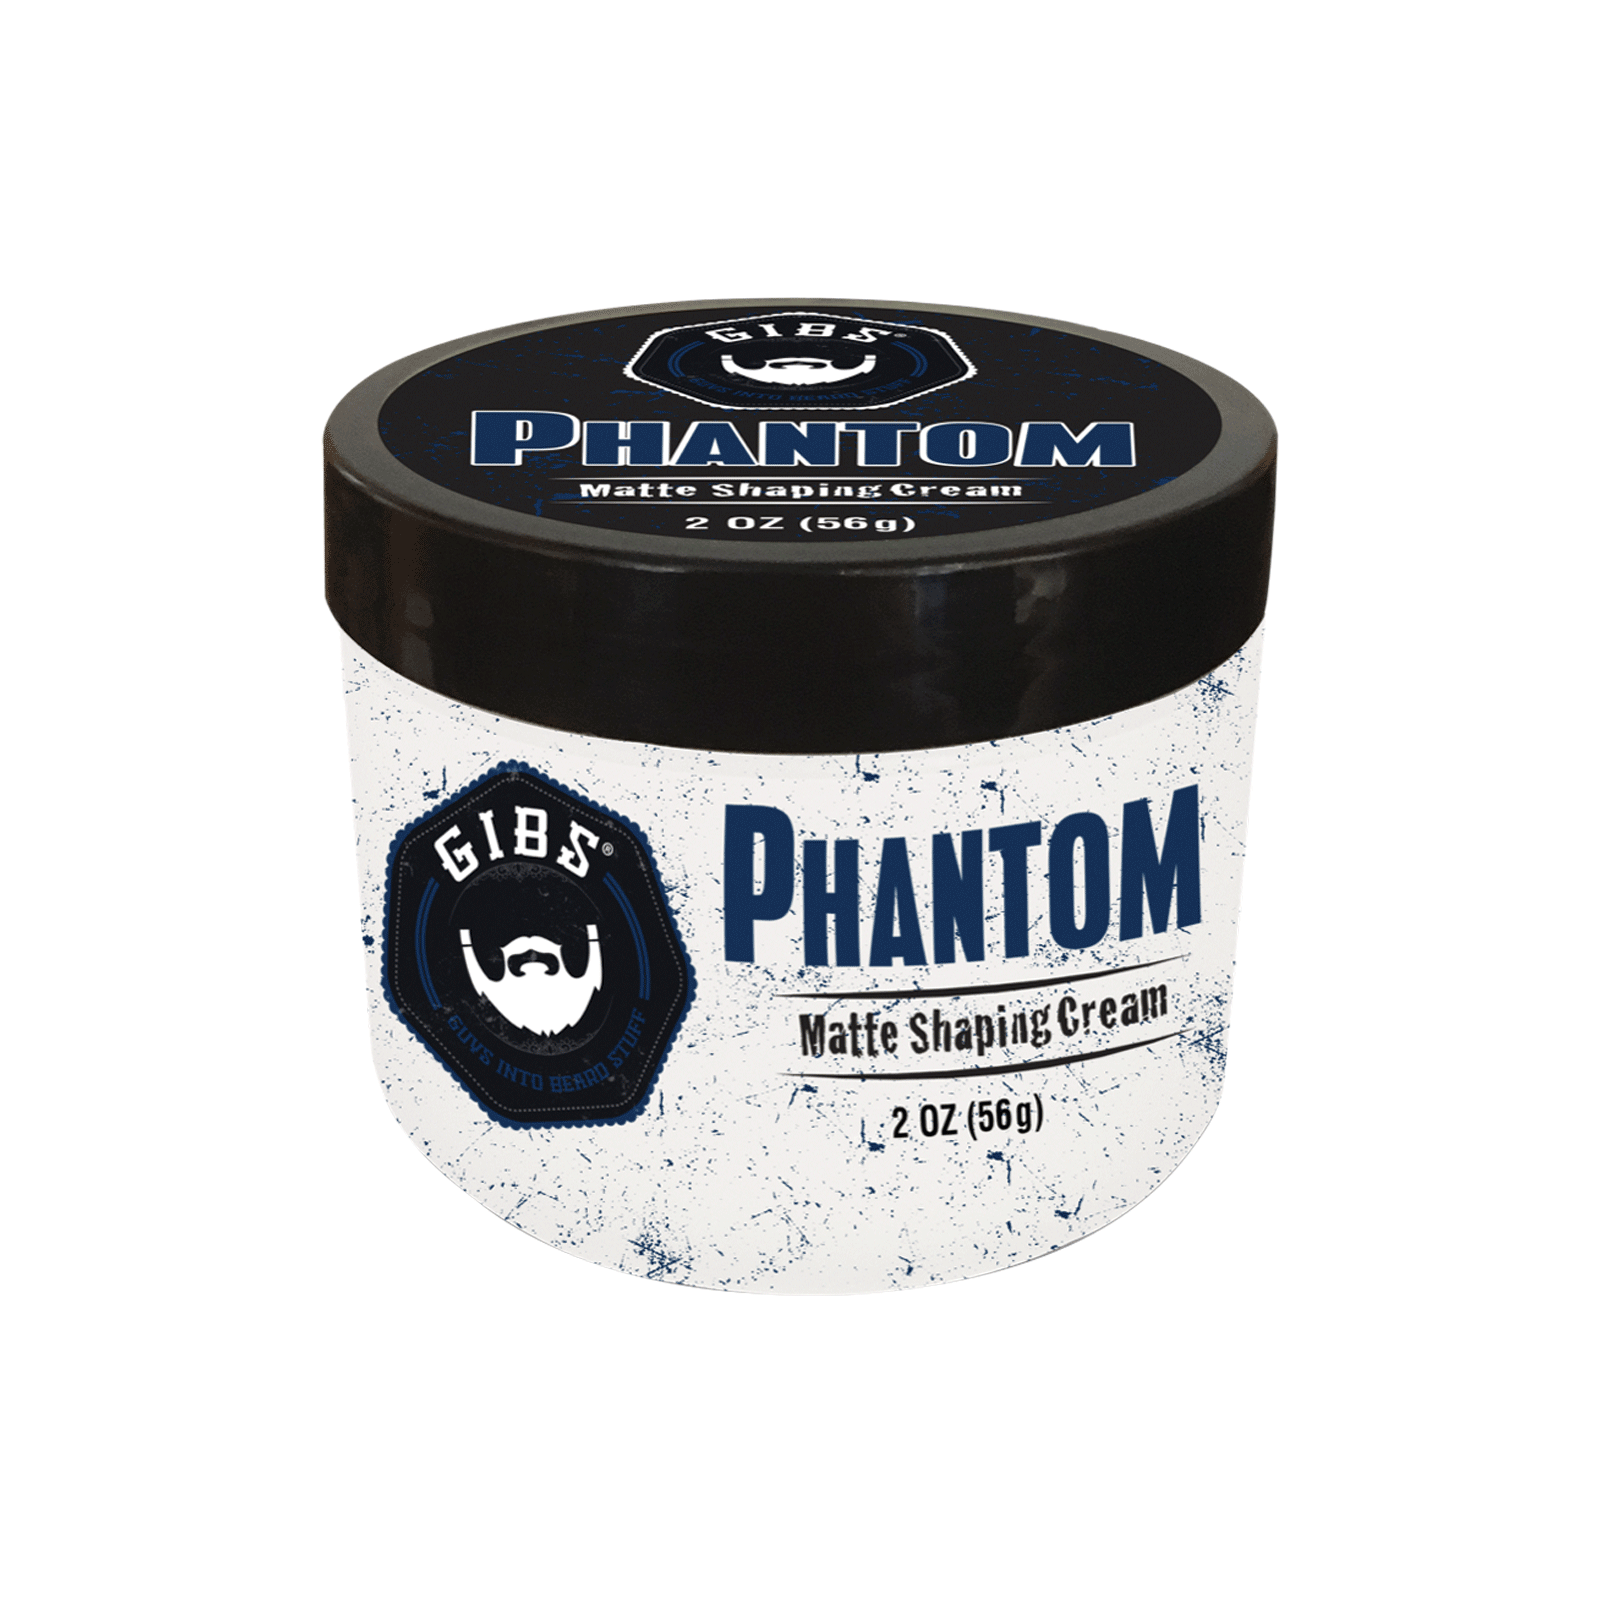 Phantom Matte Shaping Cream